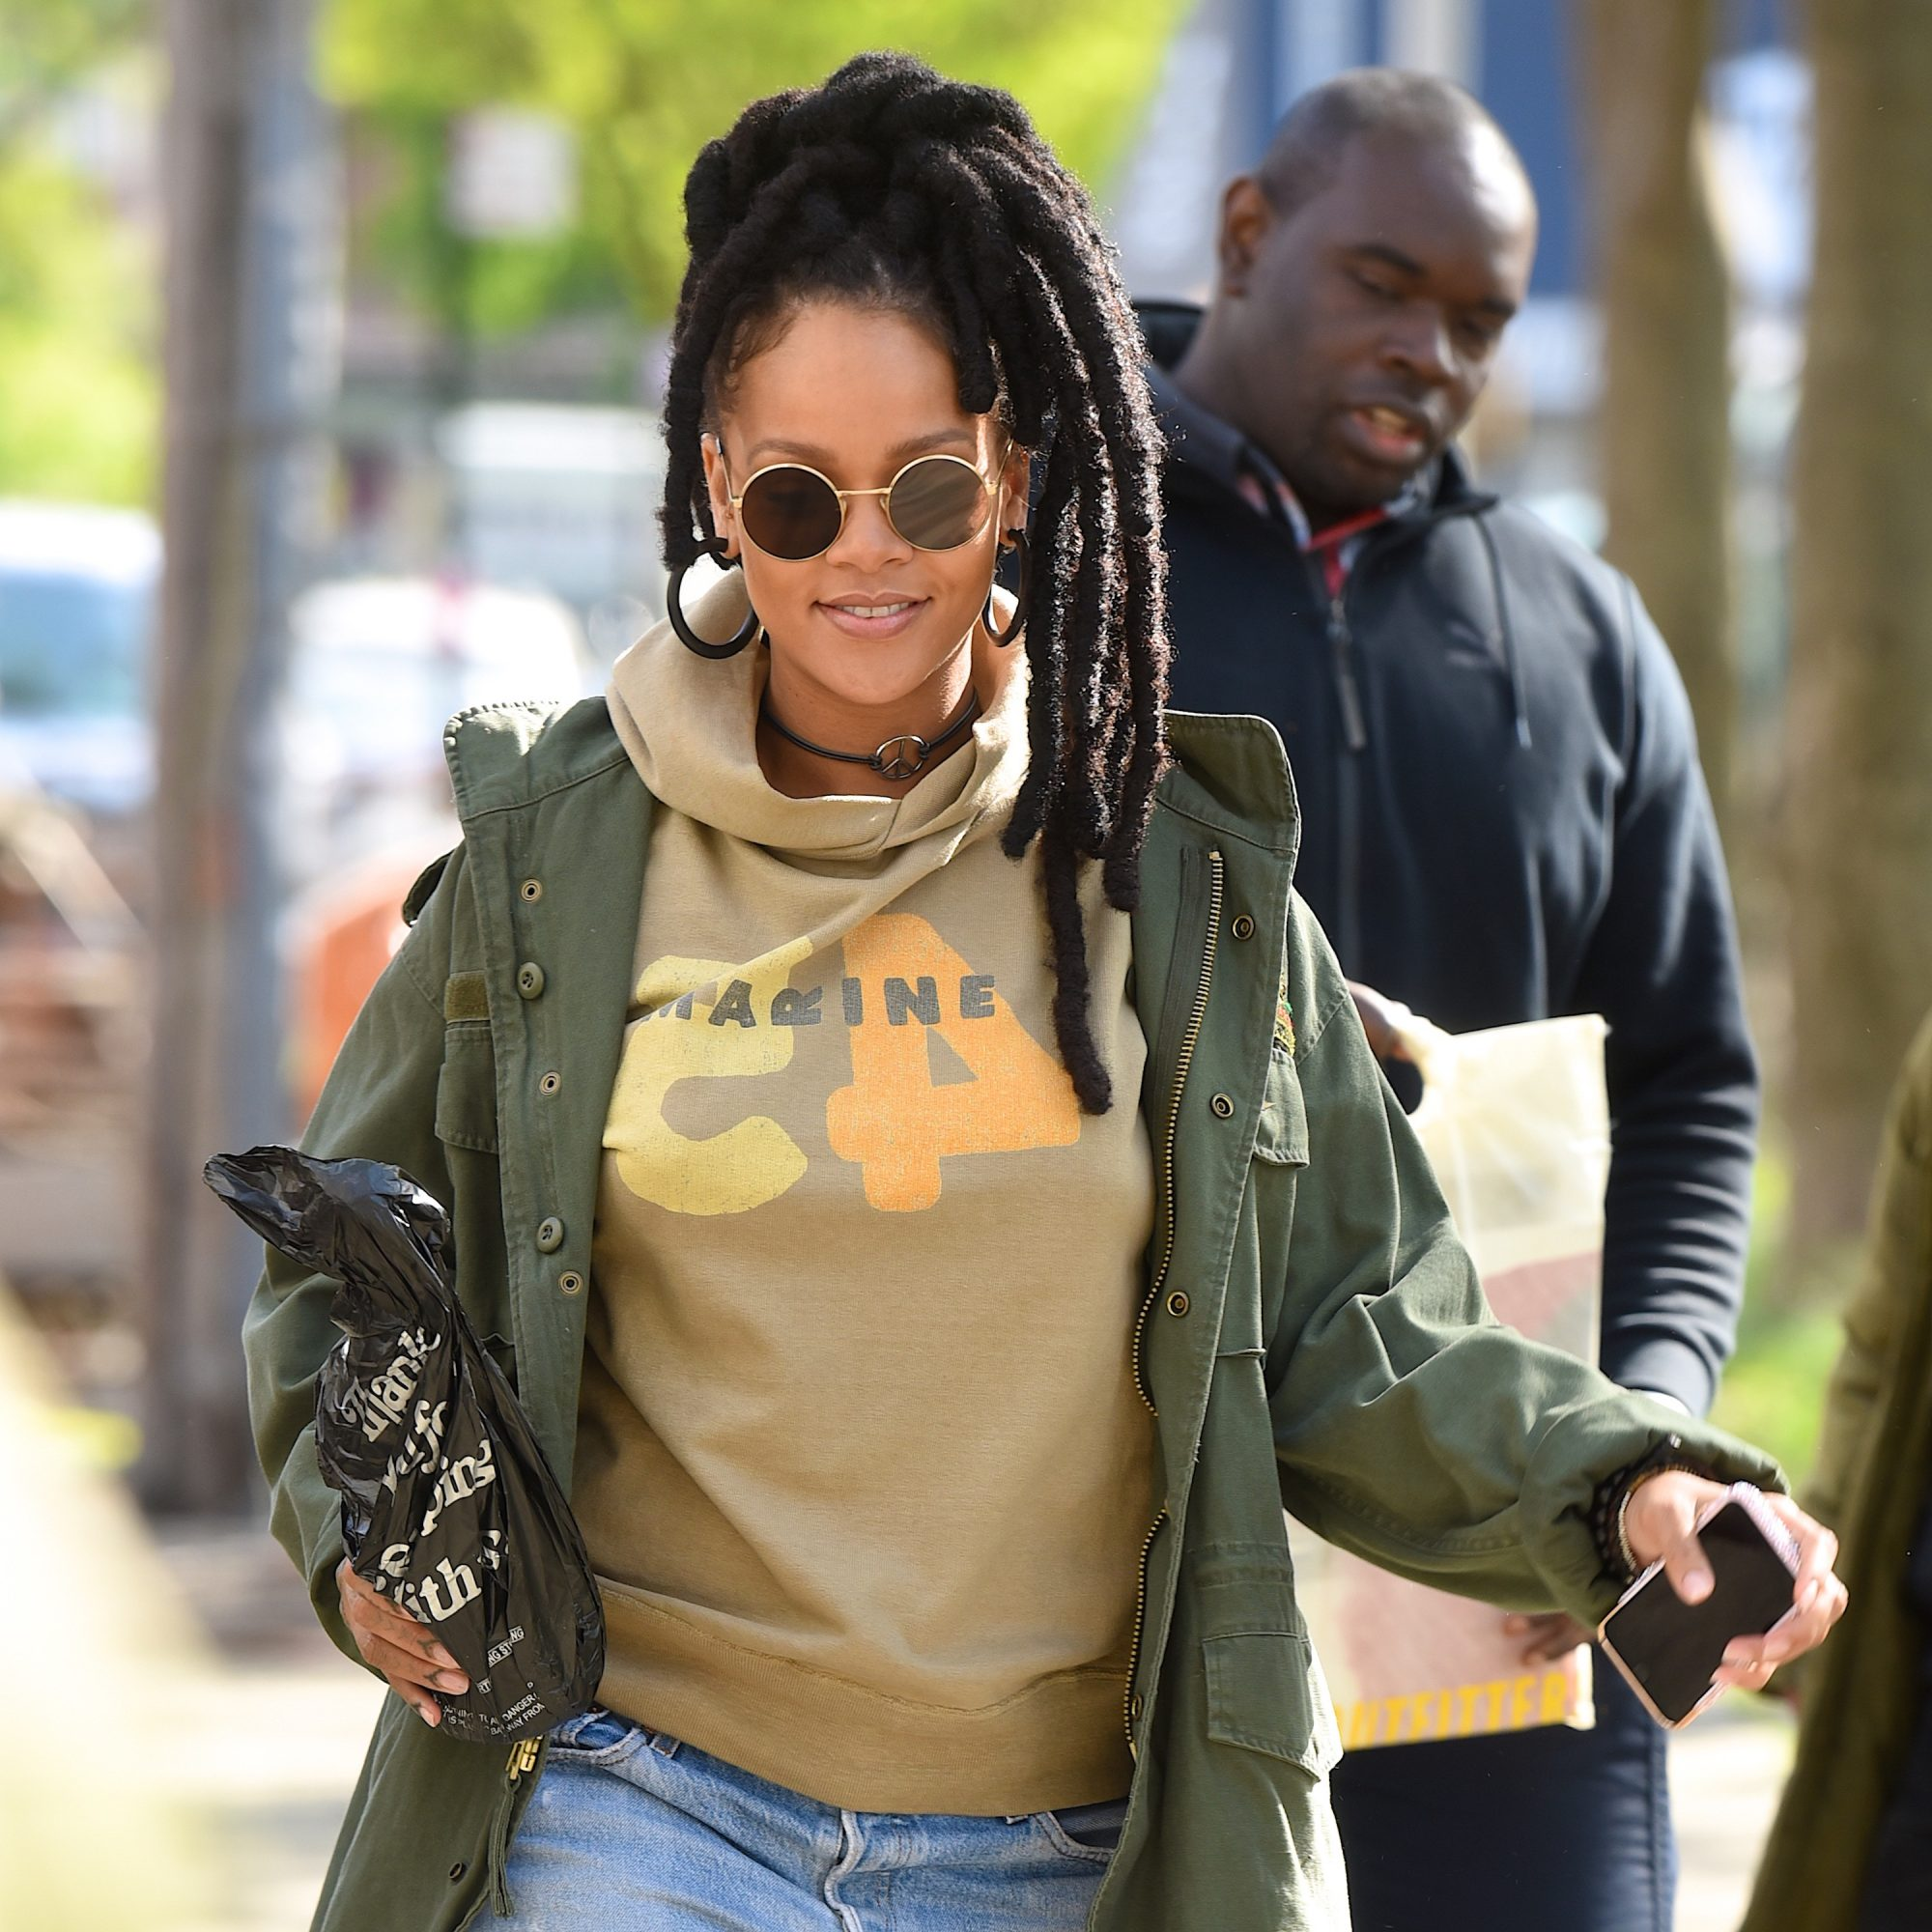 Rihanna's <em>Ocean's 8</em> Locs Hairstyle Has a Powerful Meaning